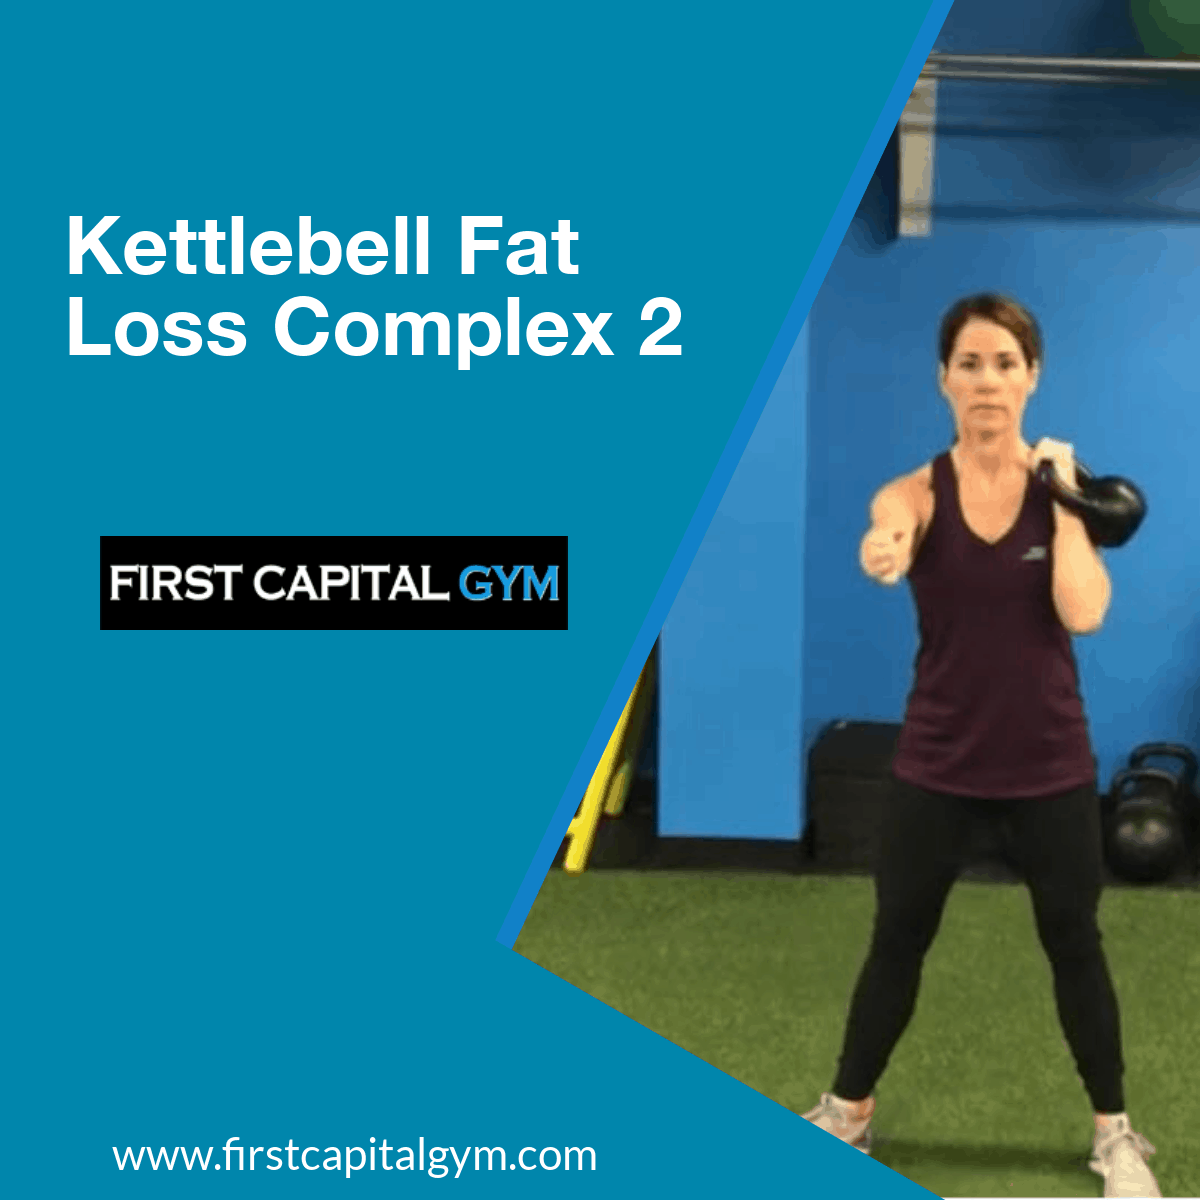 York Pa Gym - Kettlebell Complex for Fat Loss